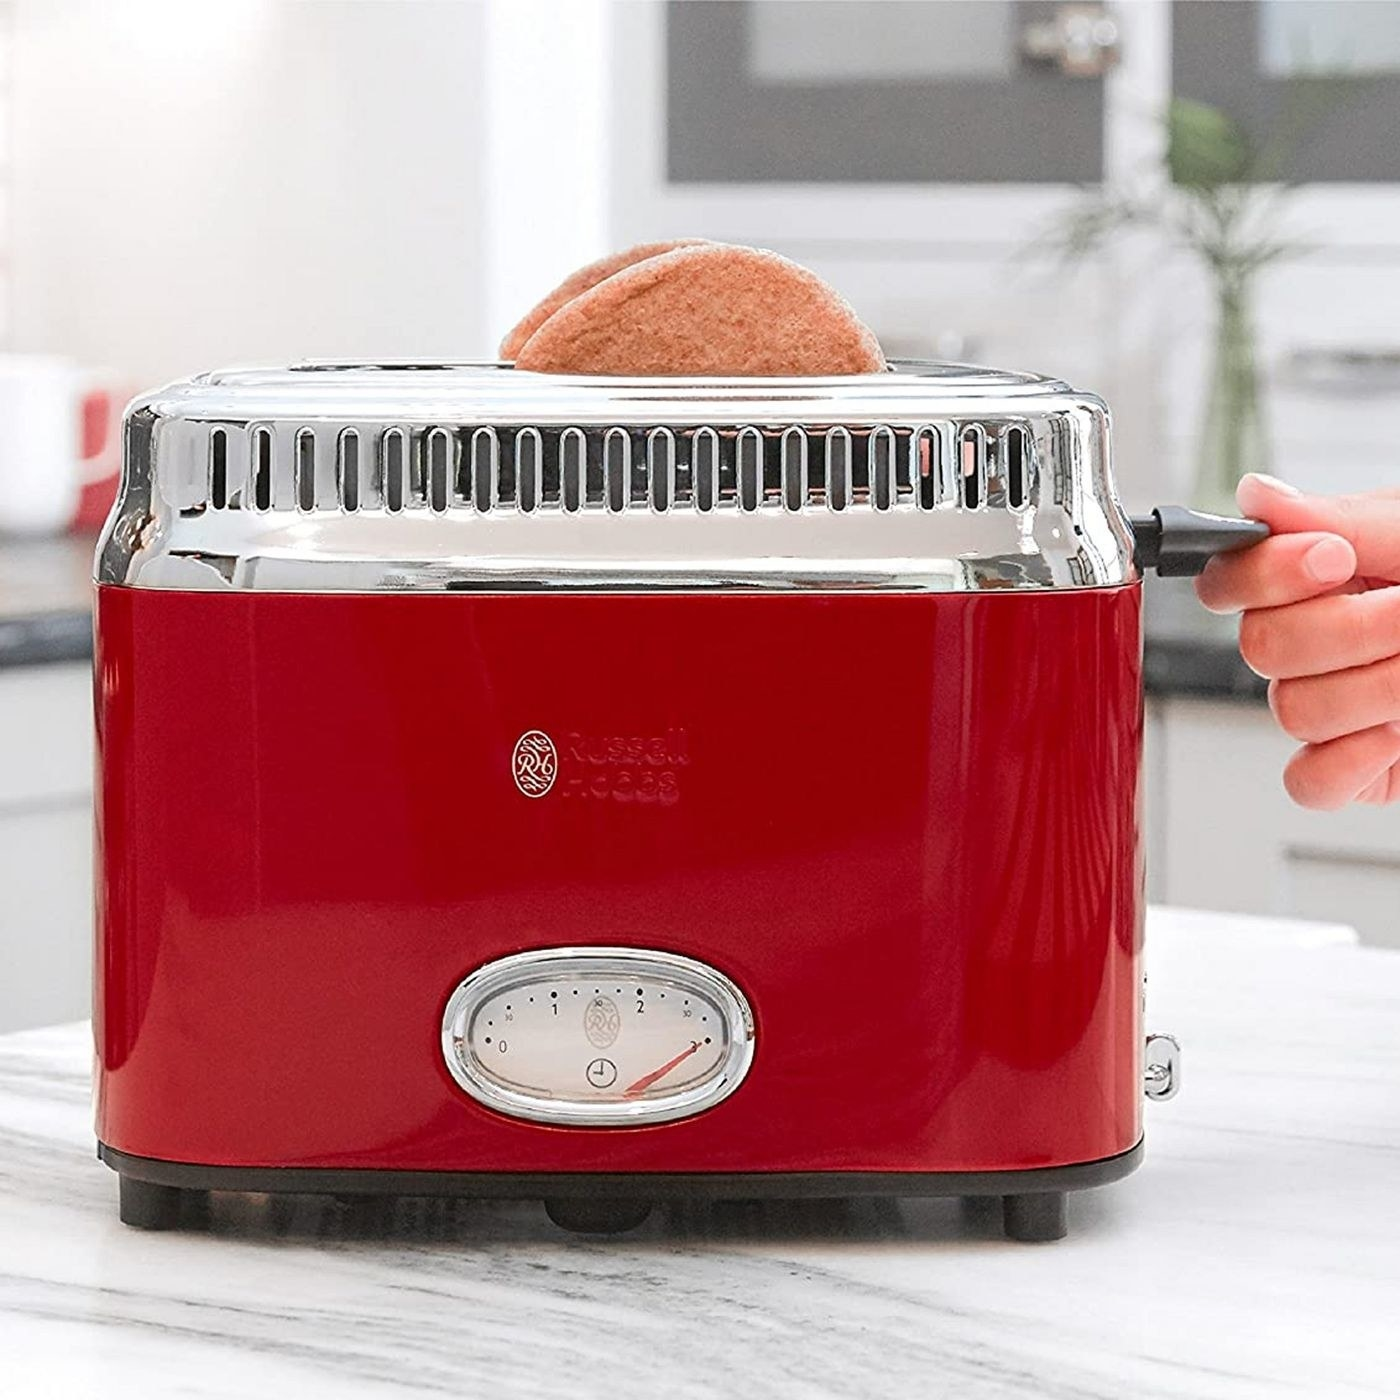 red vintage-style toaster with bread on the top